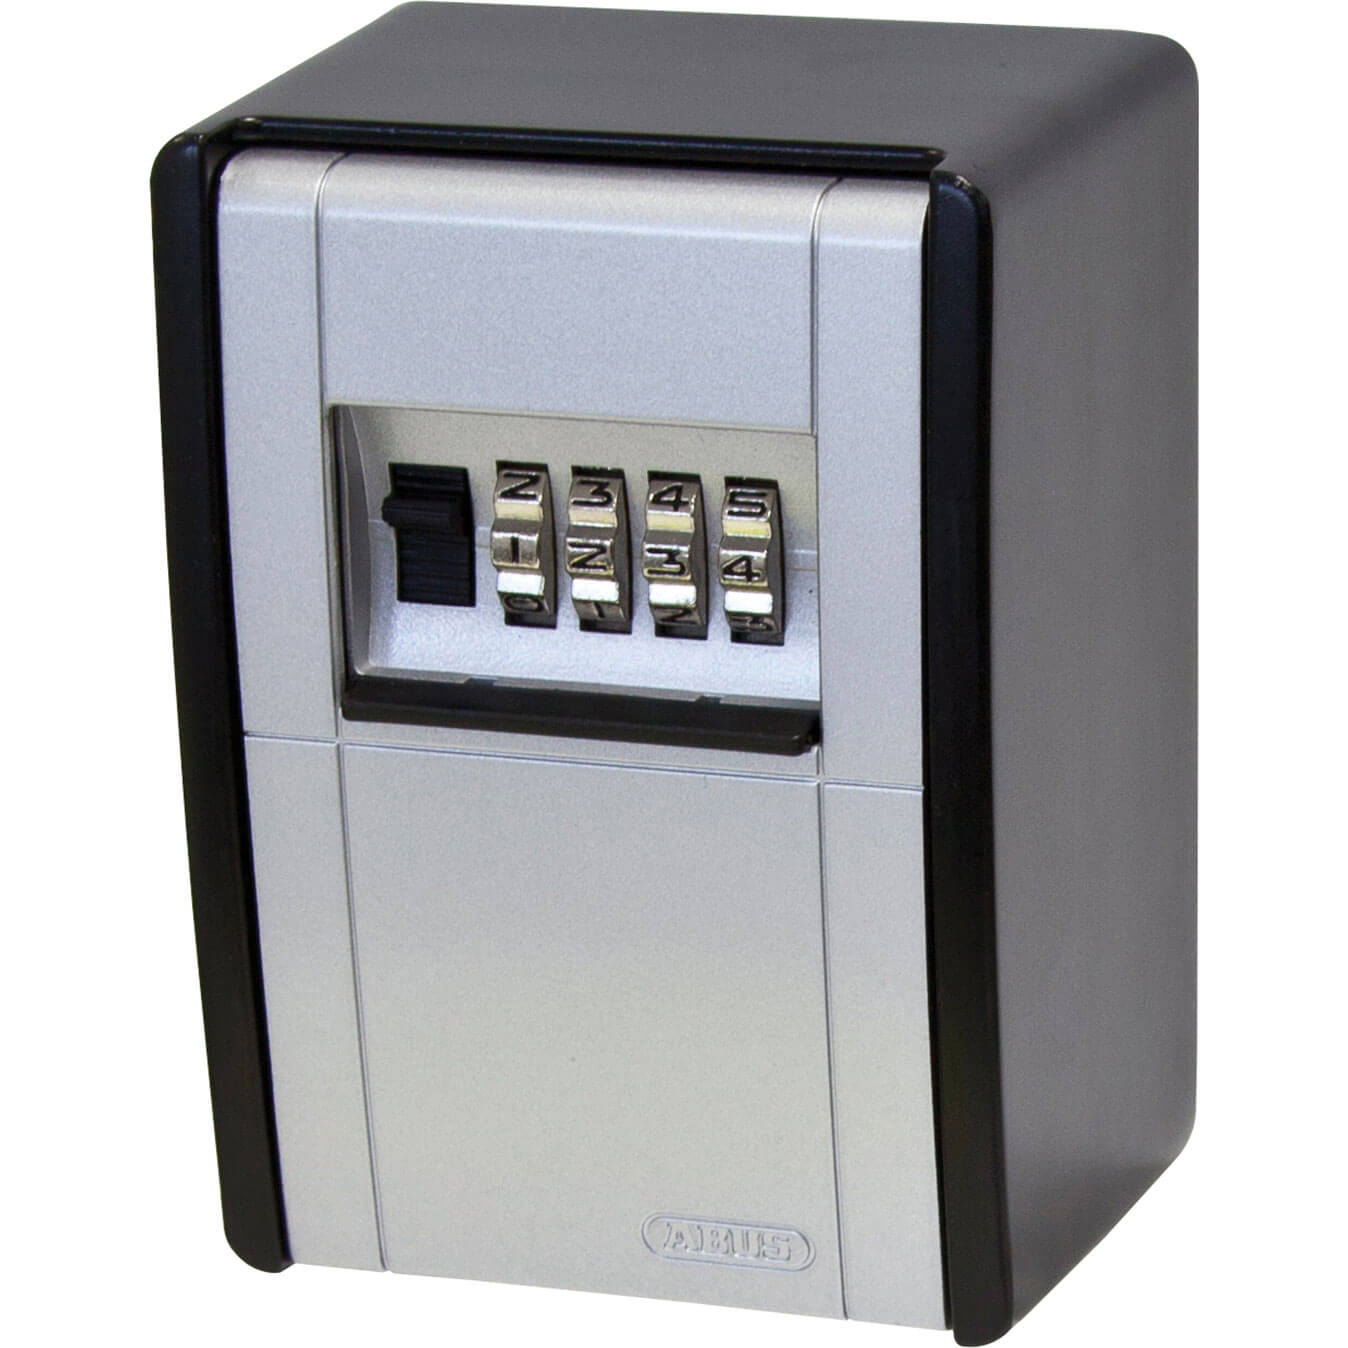 ABUS 787 Large Wall Mounted 4 Digit Small Key Safe